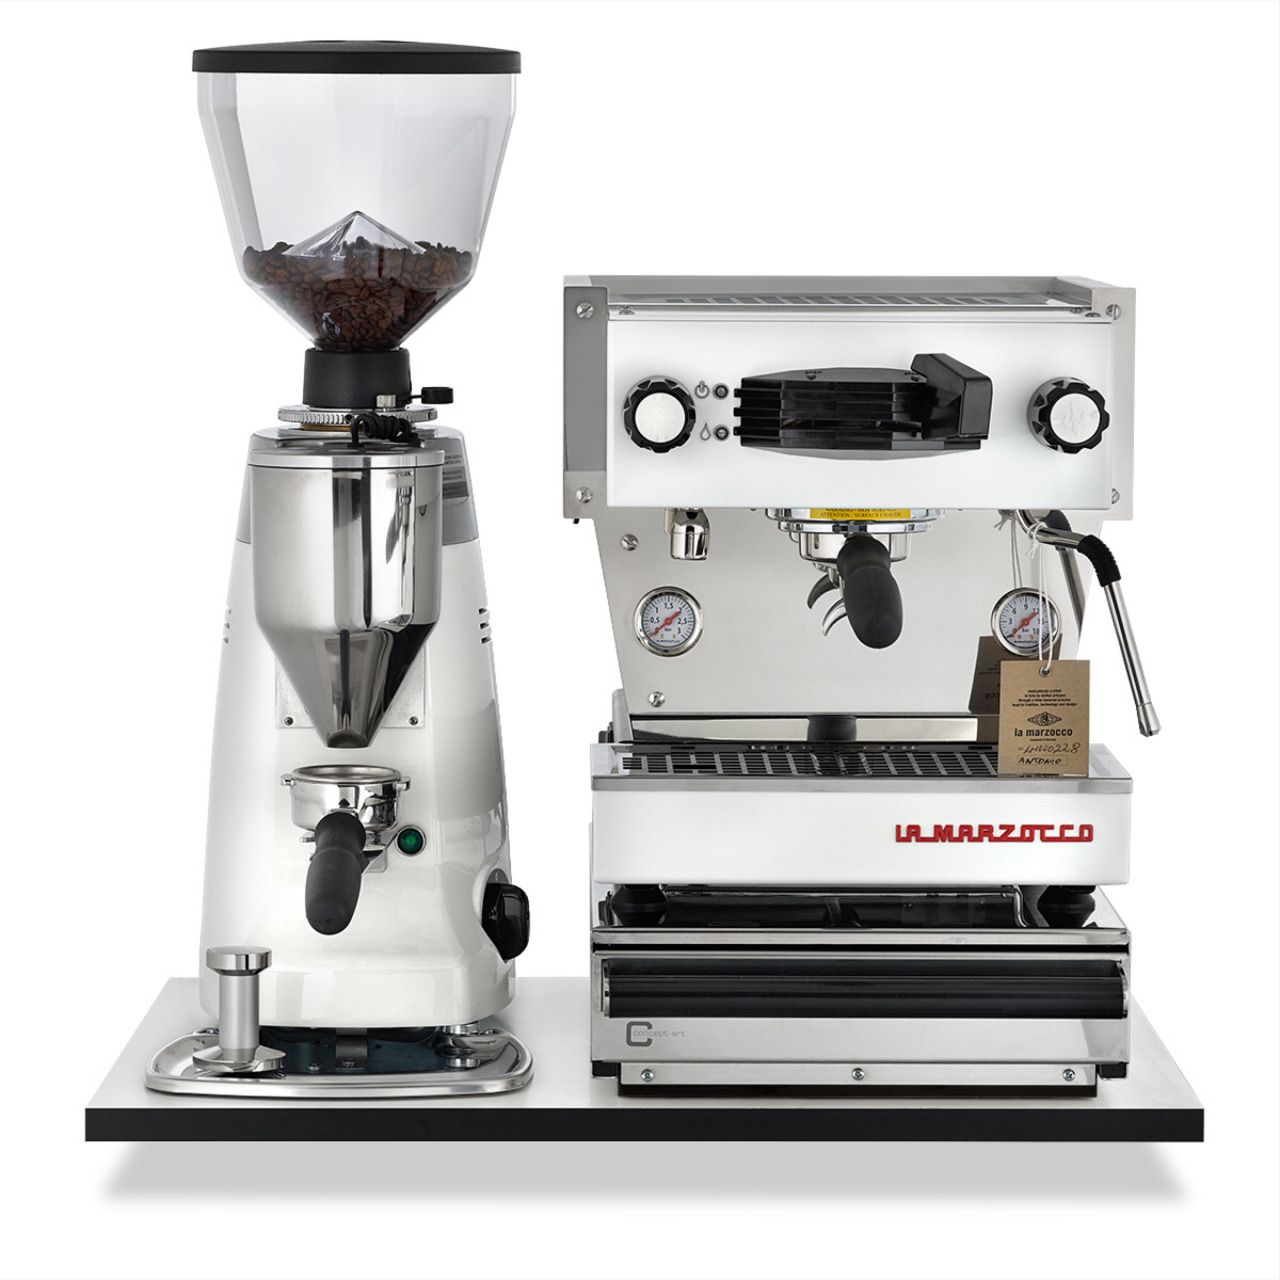 Espresso Vida | Coffee bar home, Espresso machines, Coffee ...